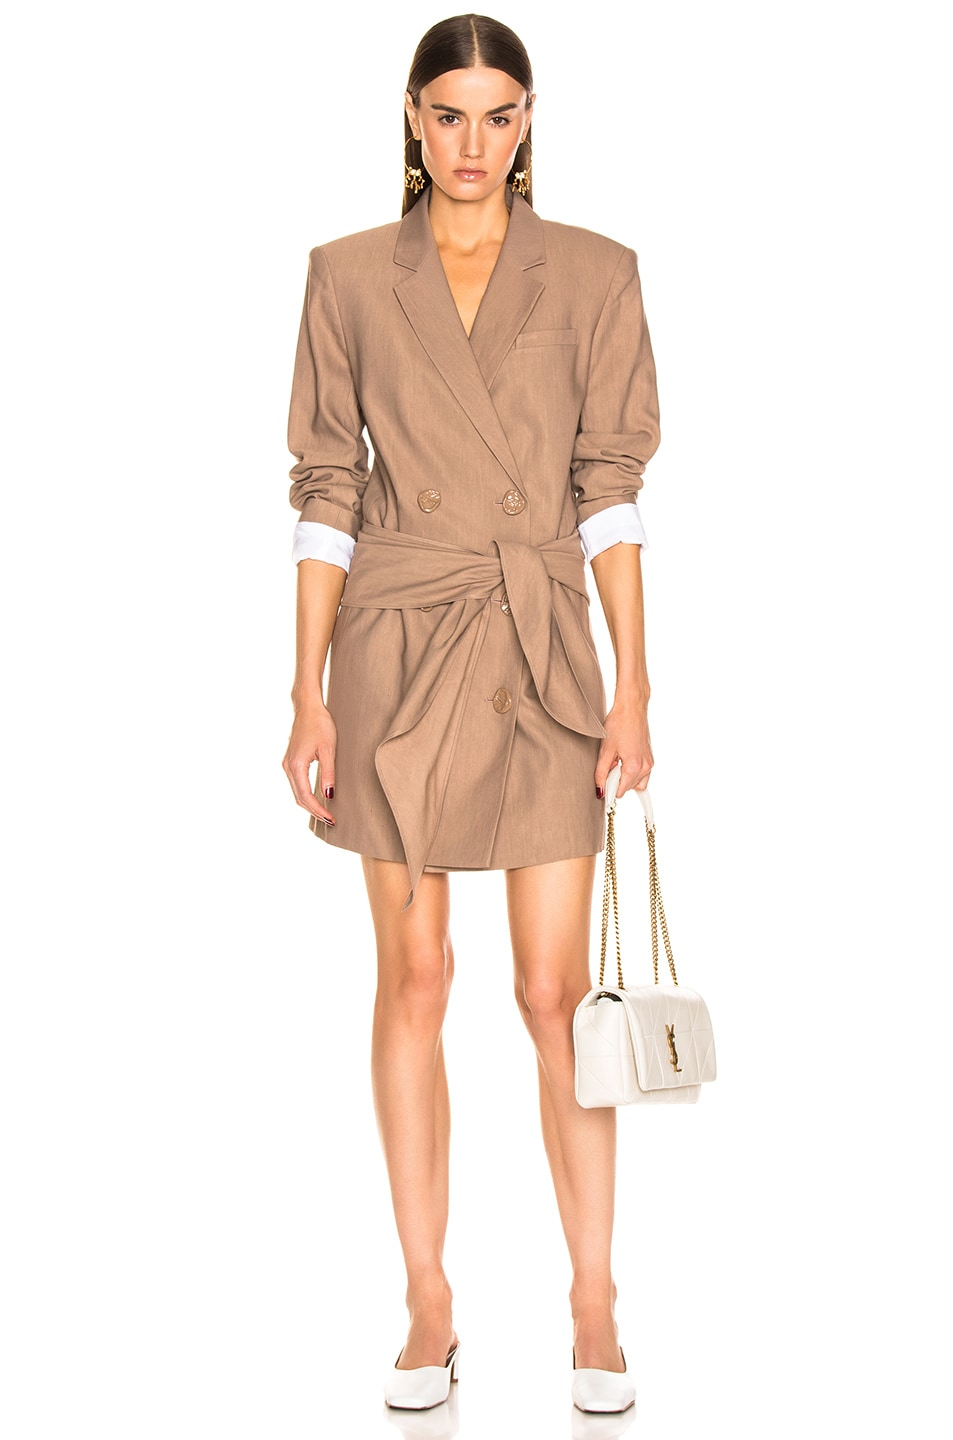 Tibi Blazers Linen Suiting Blazer Dress With Detachable Tie